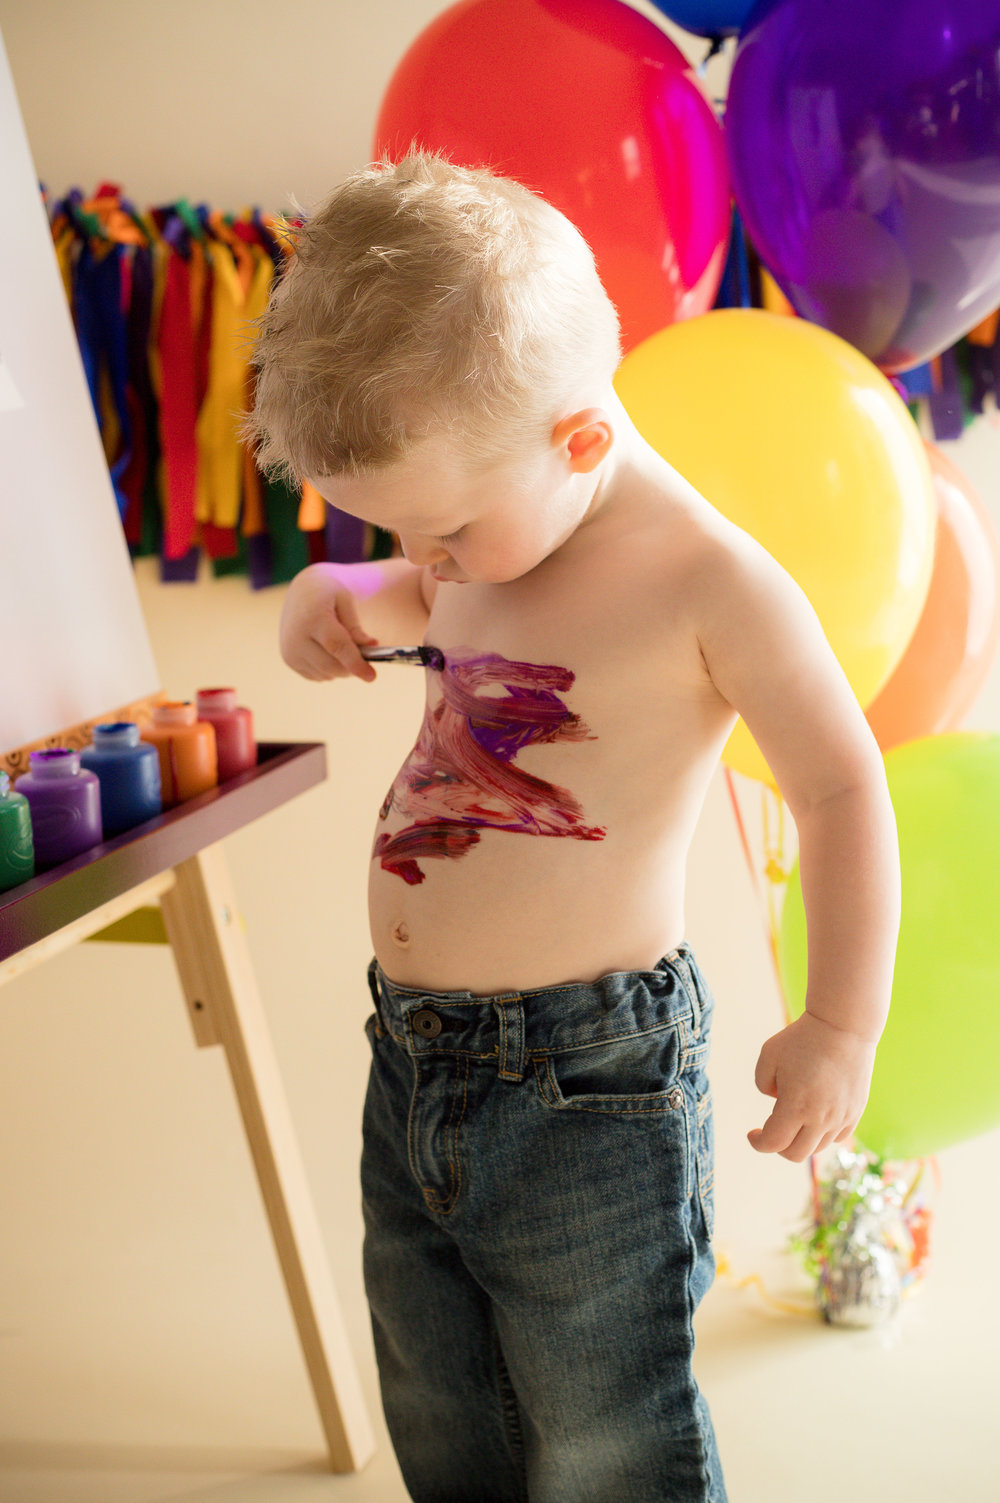 Why not take a break from painting on your easel to paint on your body?!